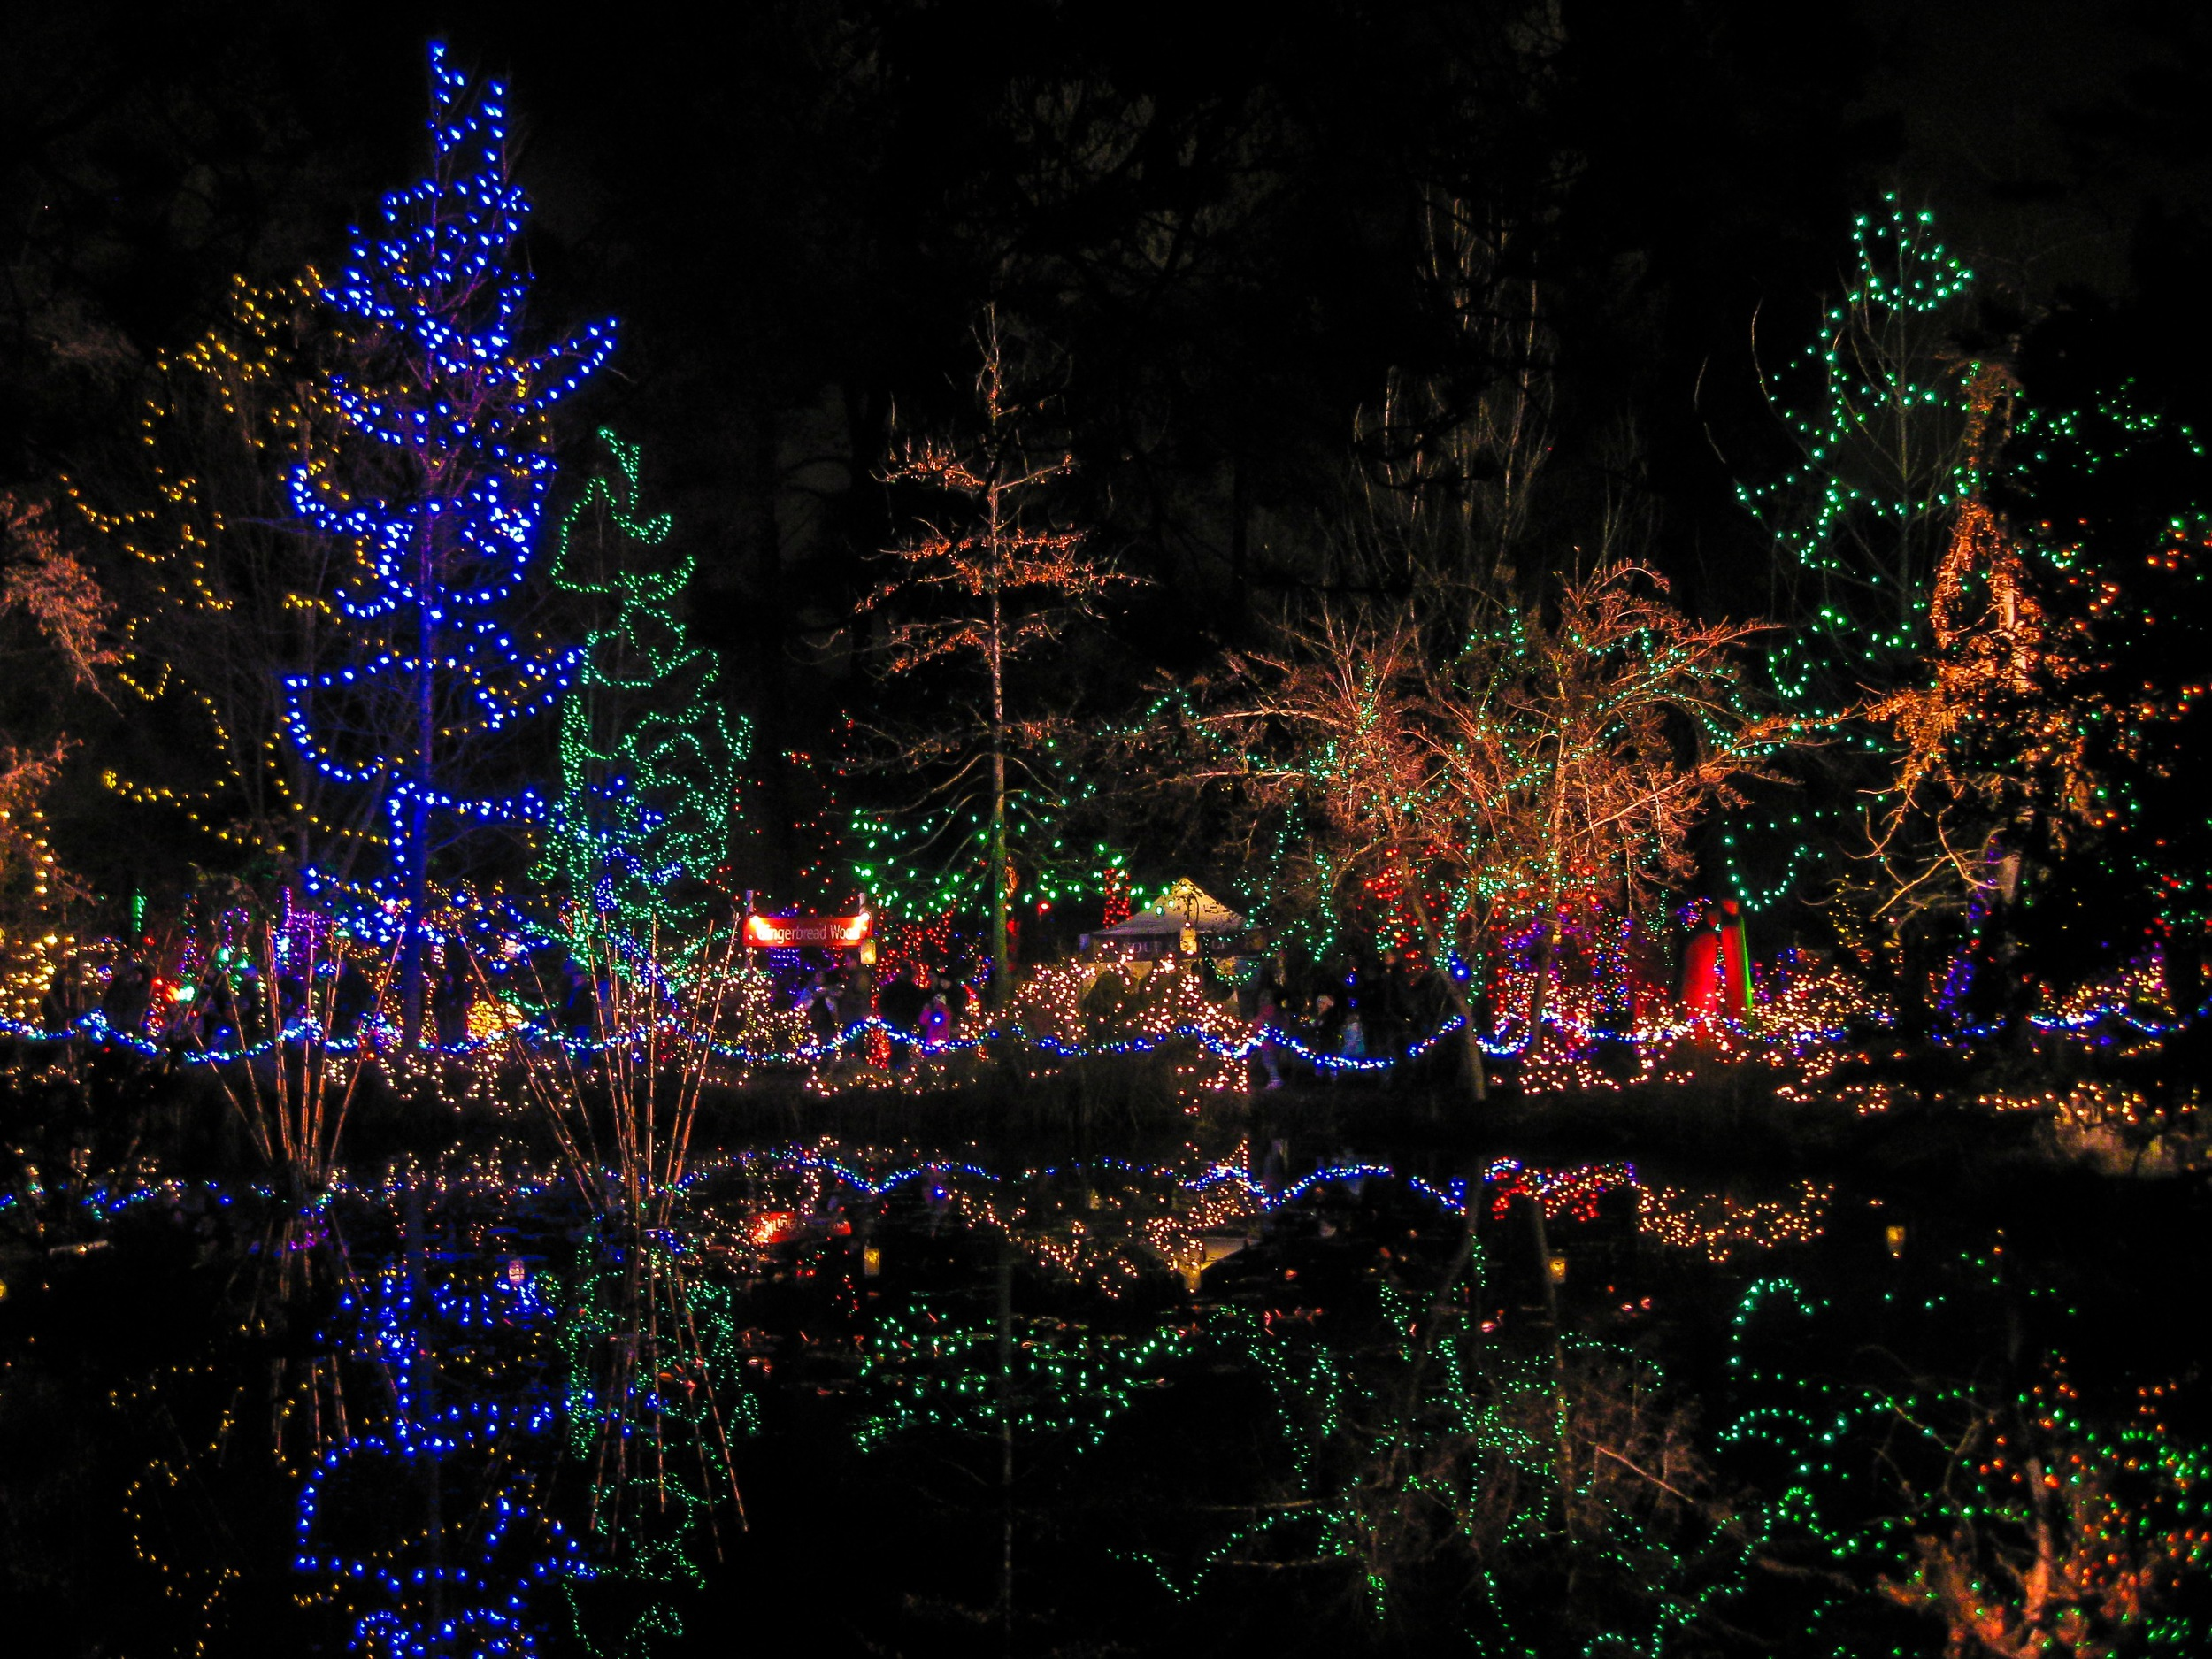 Festival of Lights at Van Dusen Botanical Gardens